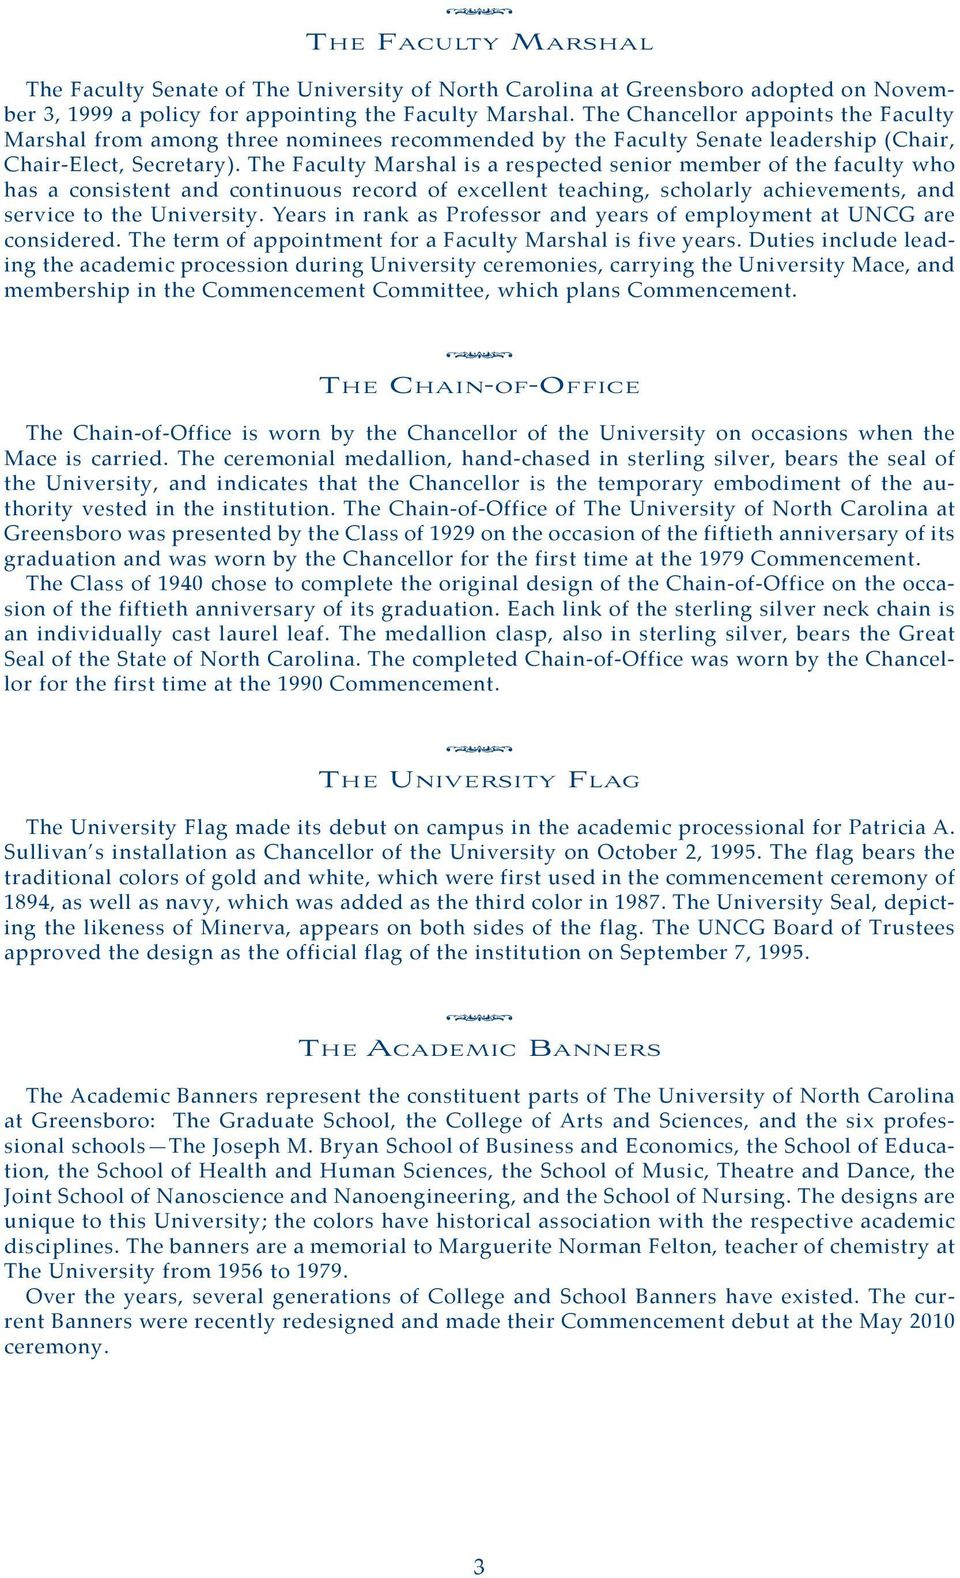 Krista webb resume at uncg top critical essay proofreading for hire for phd